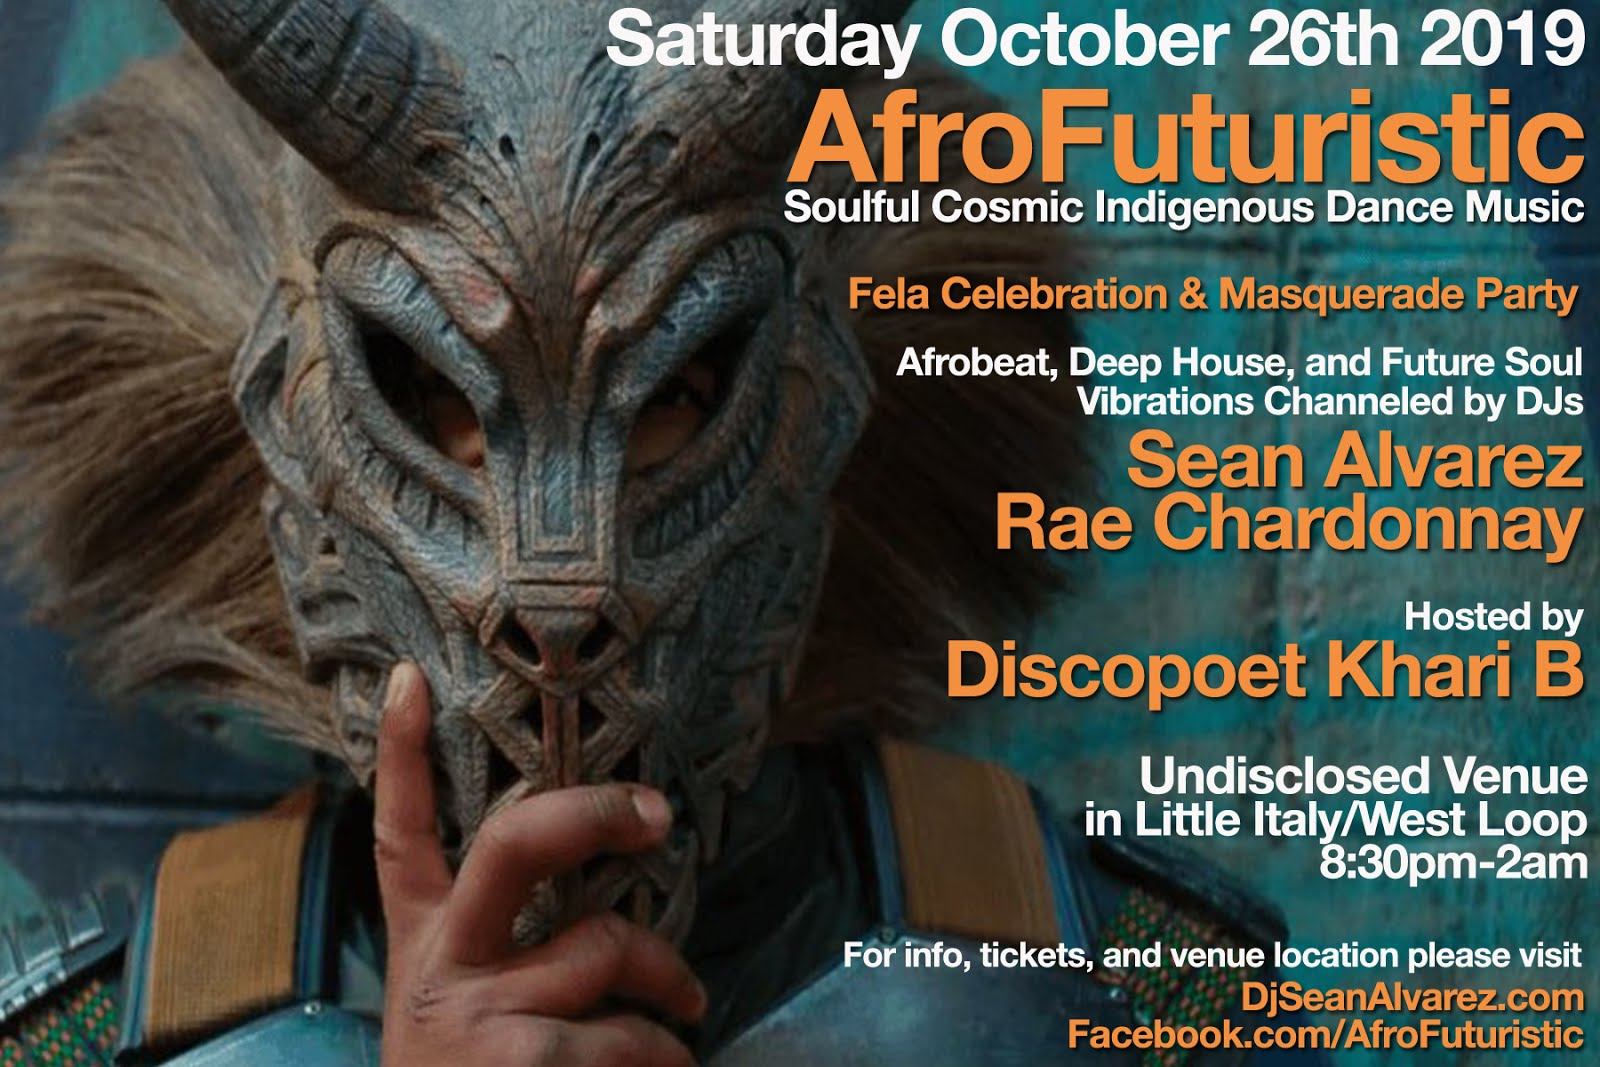 Sat 10/26: AfroFuturistic Fela Celebration & Masquerade Party